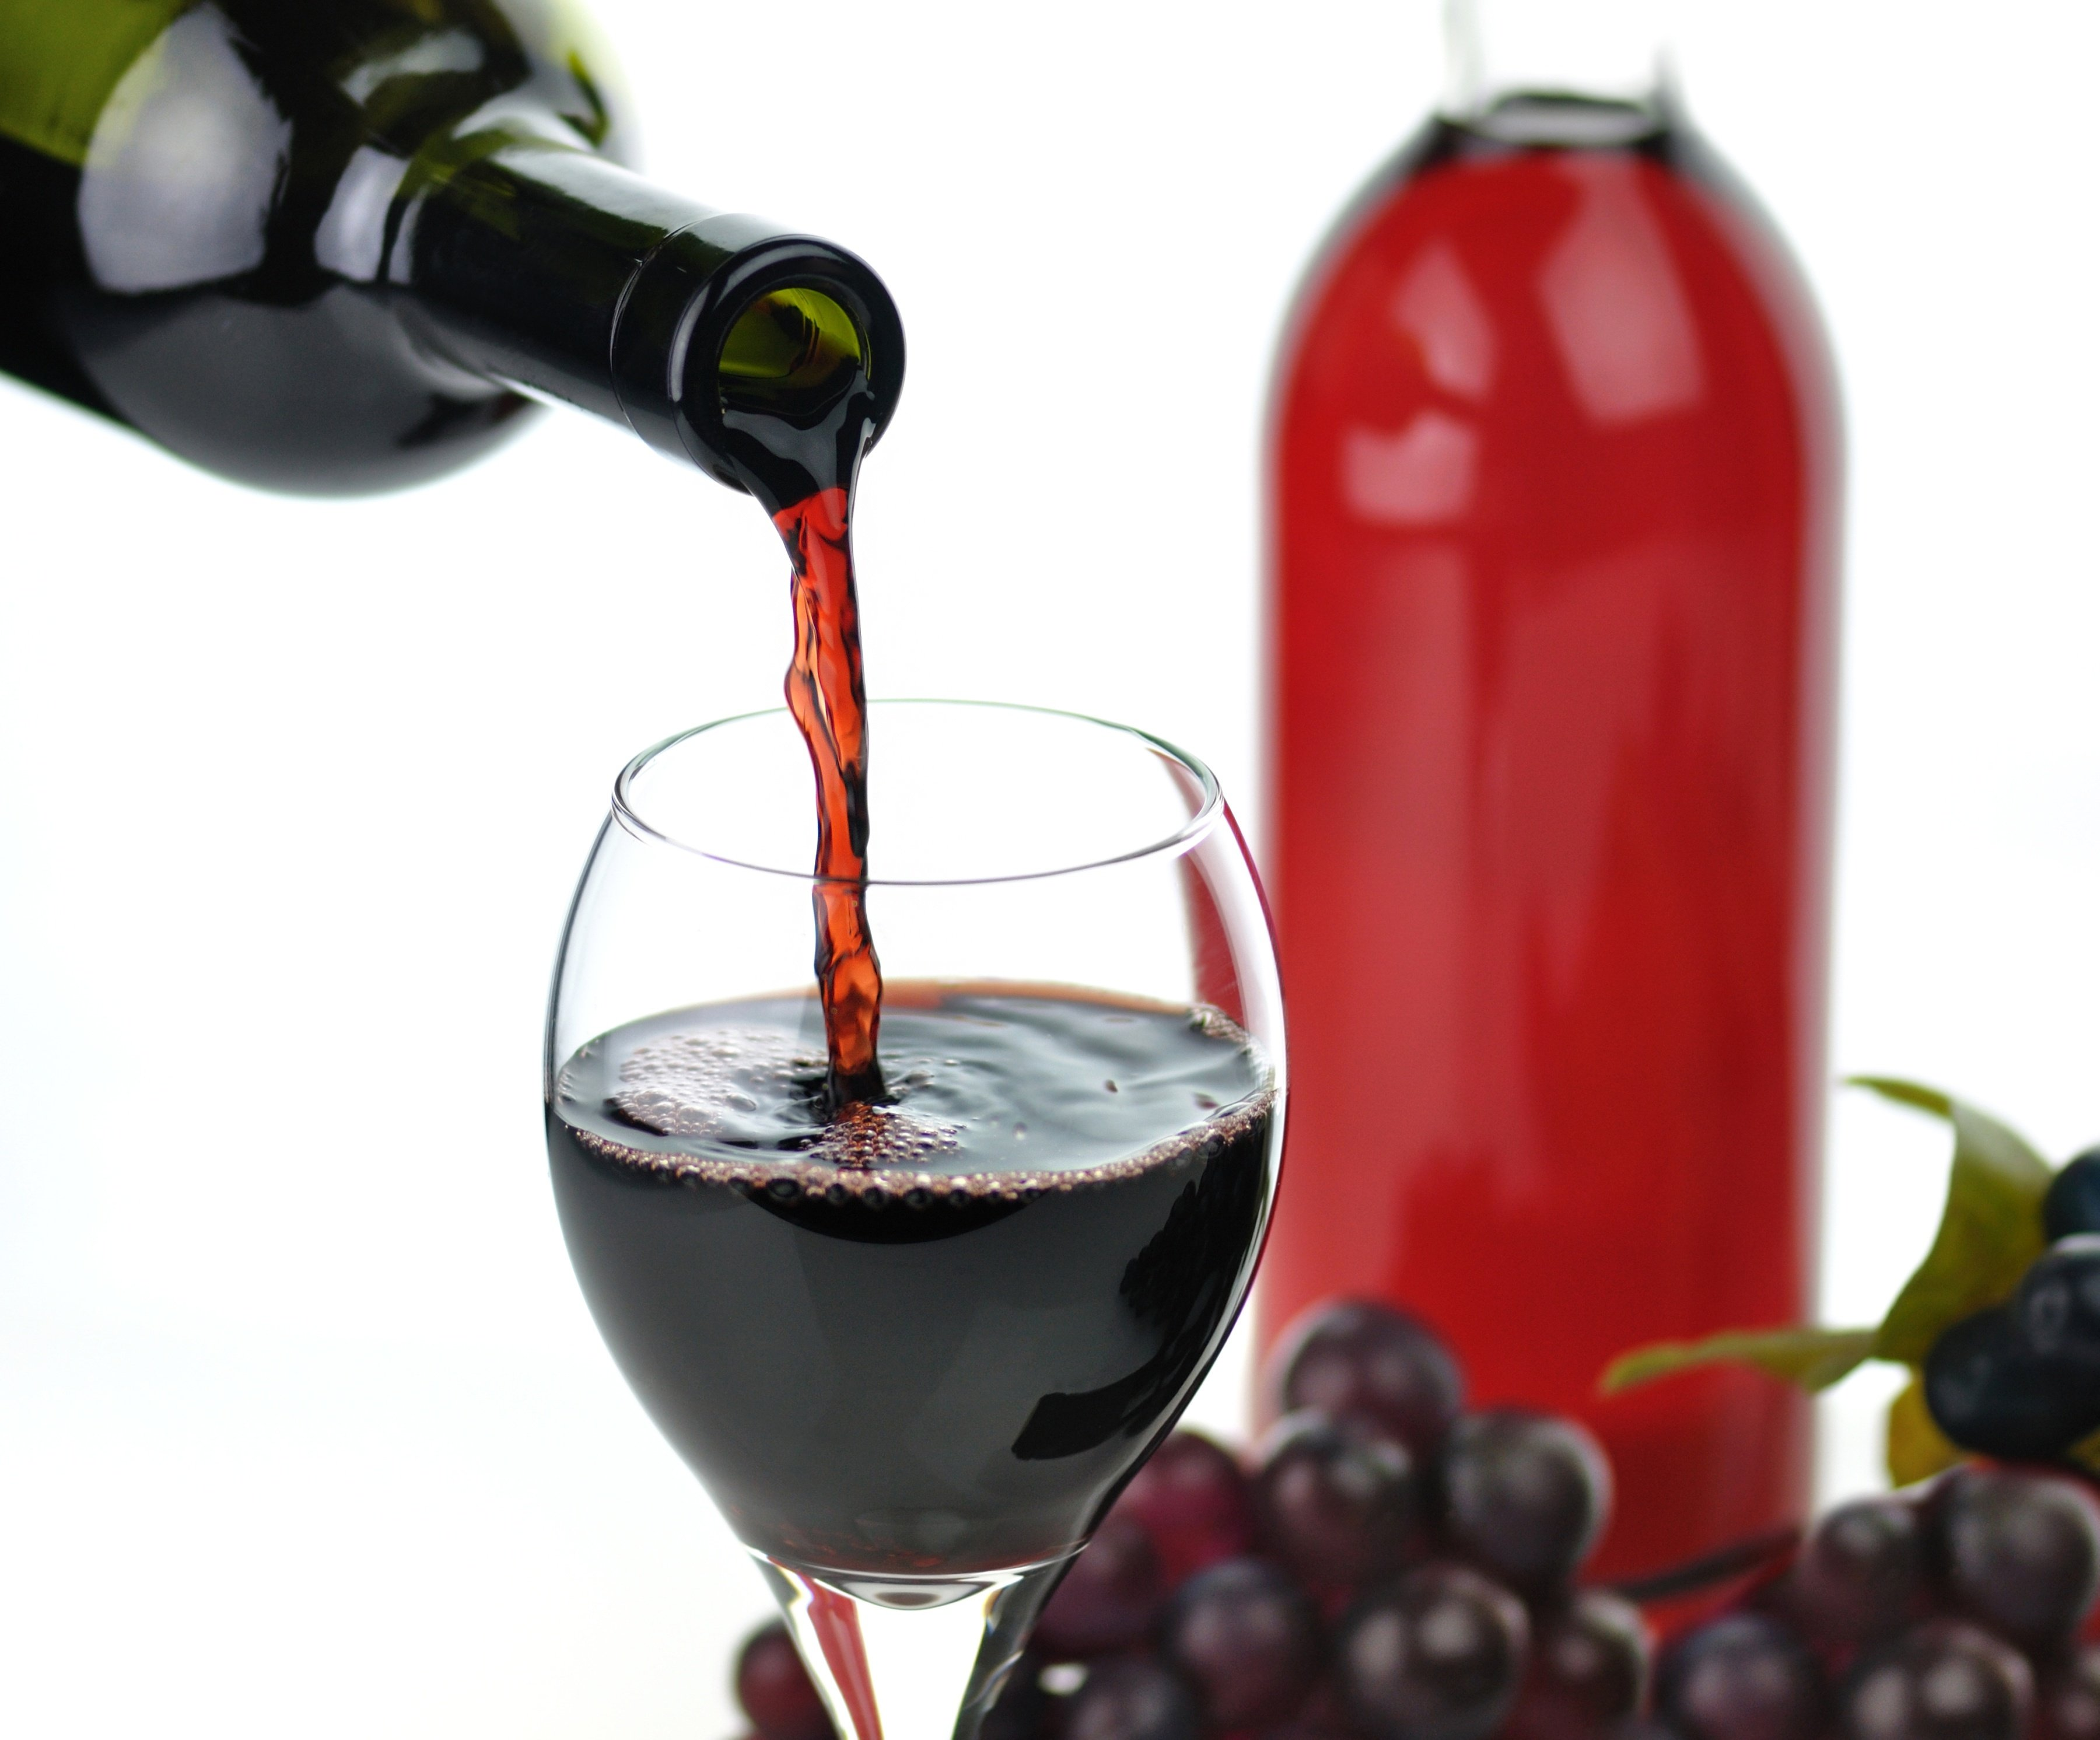 A_Molecule_in_Red_Wine_May_Slow_the_Progression_of_Alzheimers.jpg